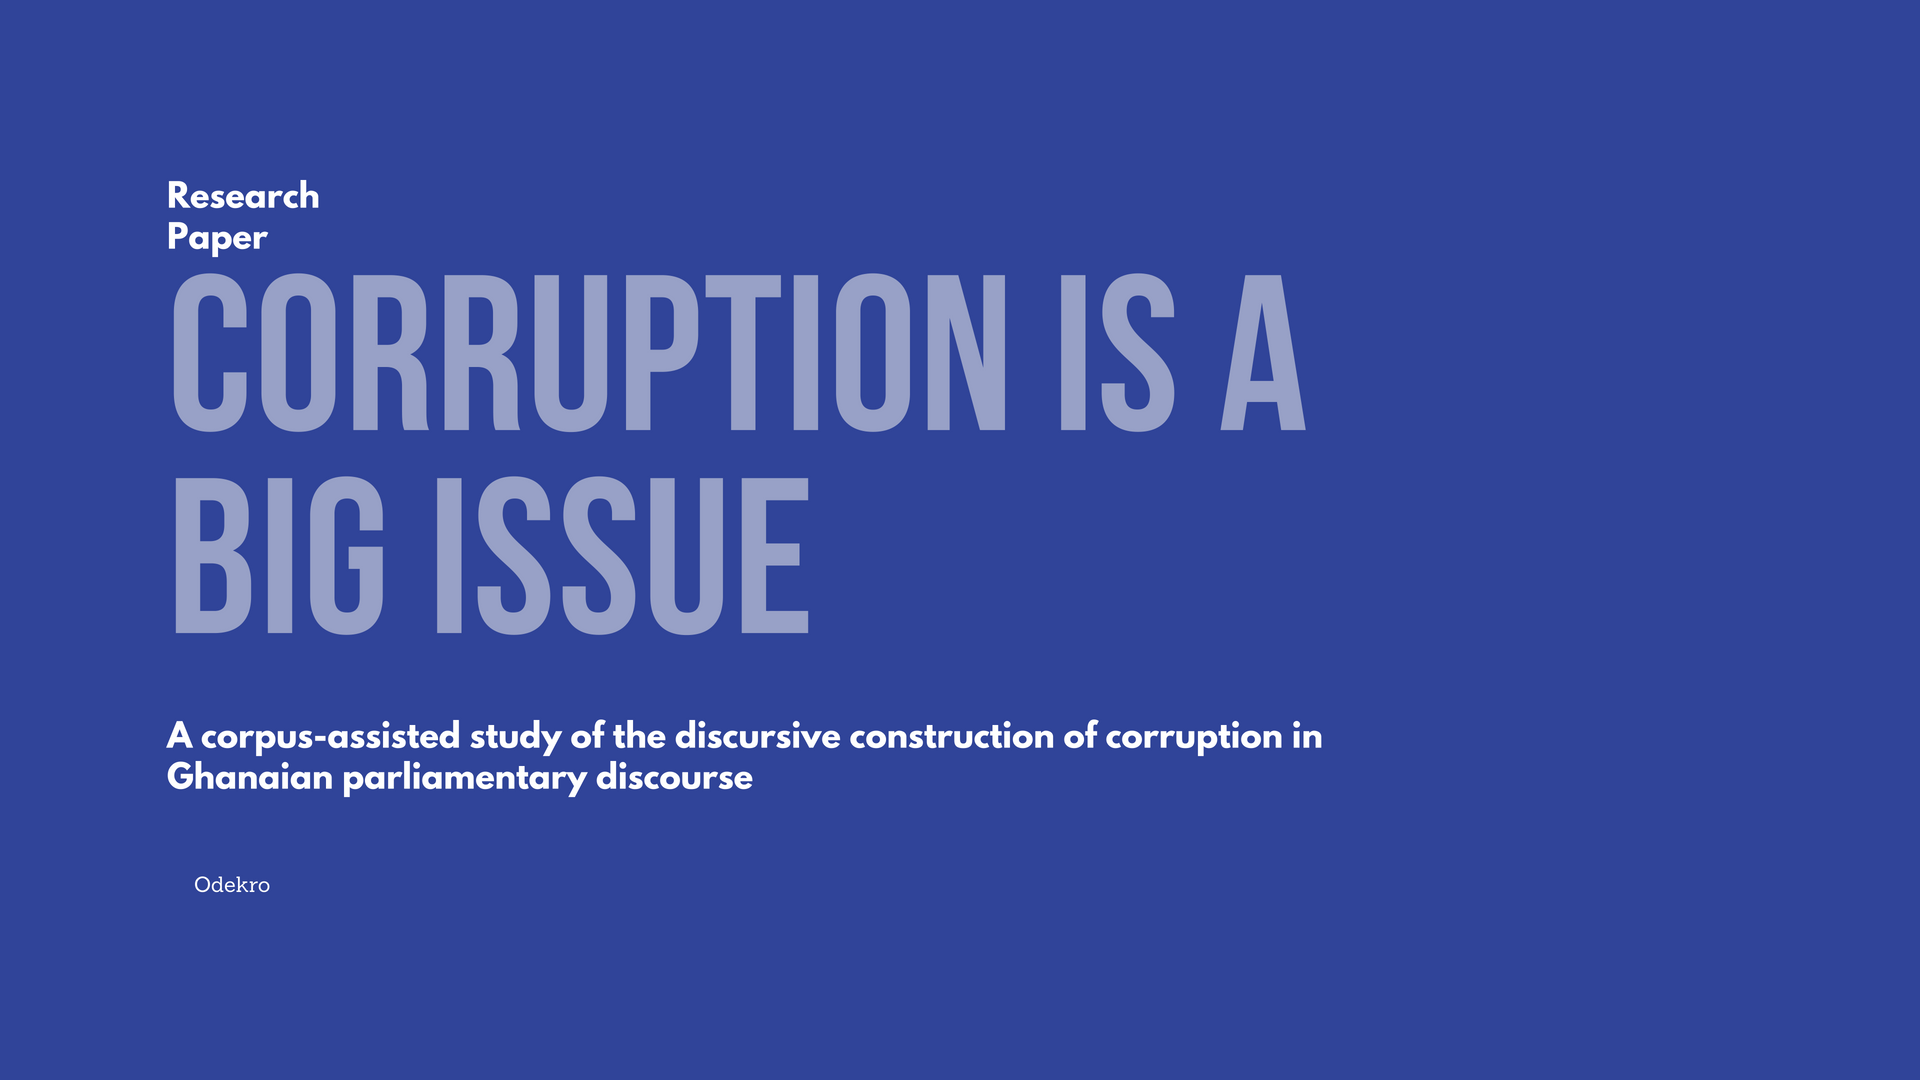 Corruption is a Big Issue: A corpus-assisted study of the discursive construction of corruption in Ghanaian parliamentary discourse